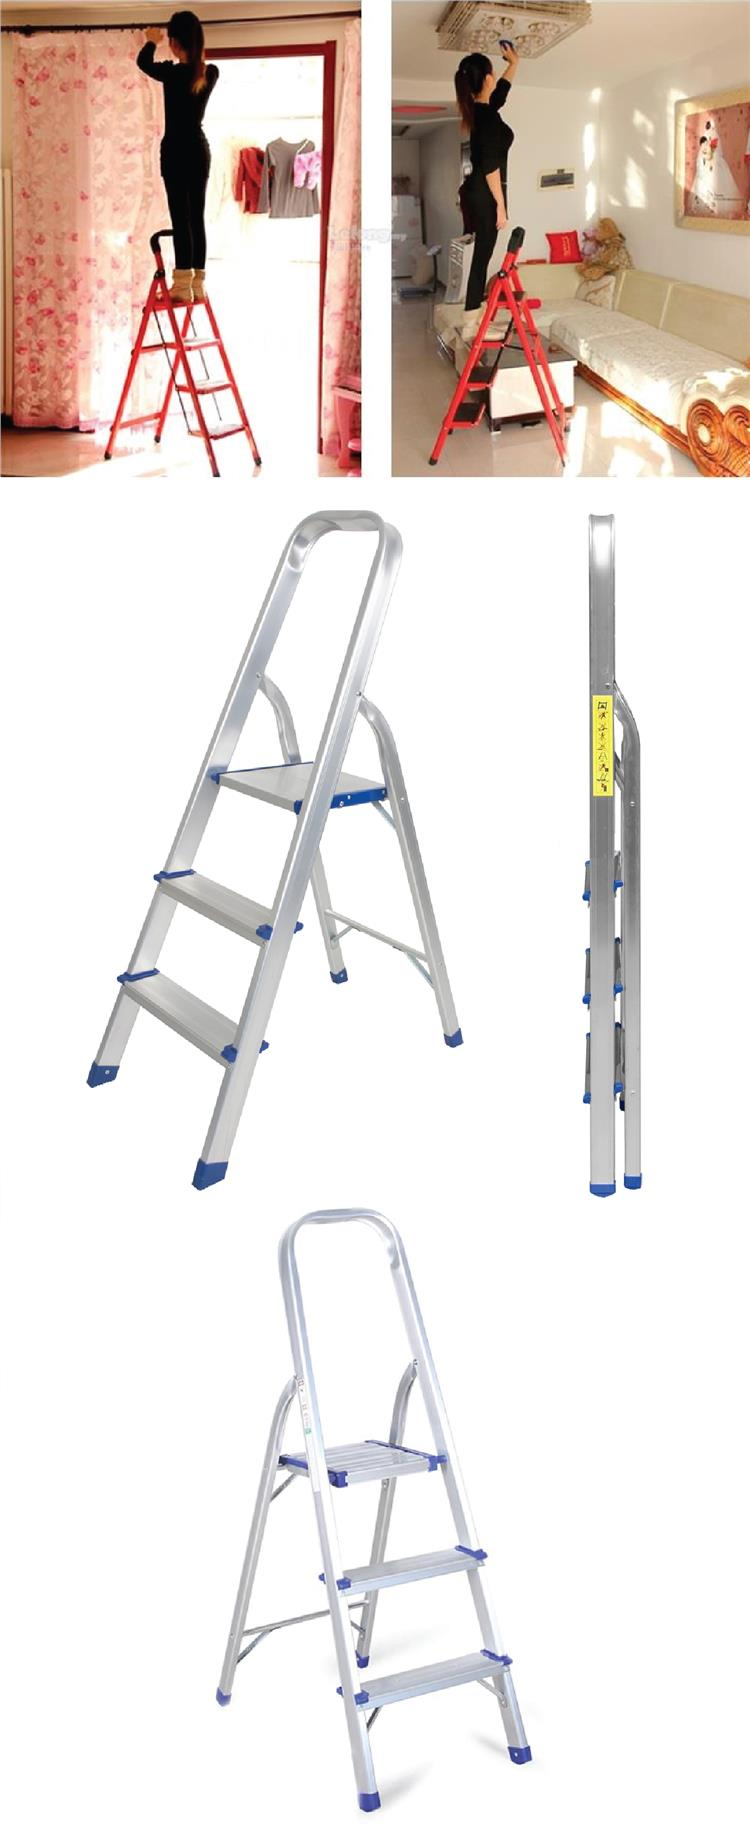 3 Step Pedal Aluminium Ladder Foldin (end 7/13/2019 4:15 PM)